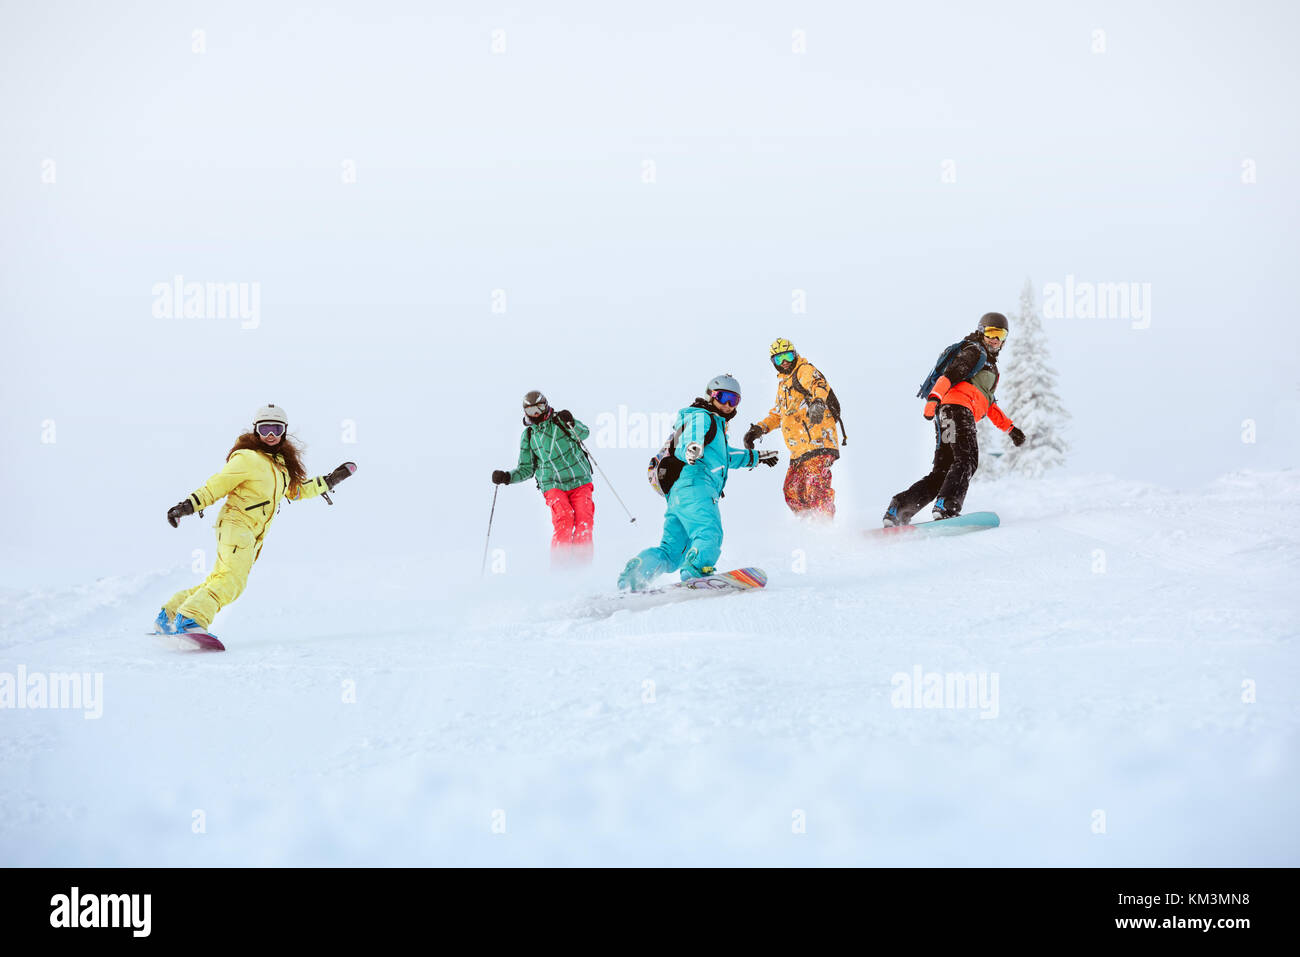 Group of happy snowboarders and skiers on ski slope - Stock Image